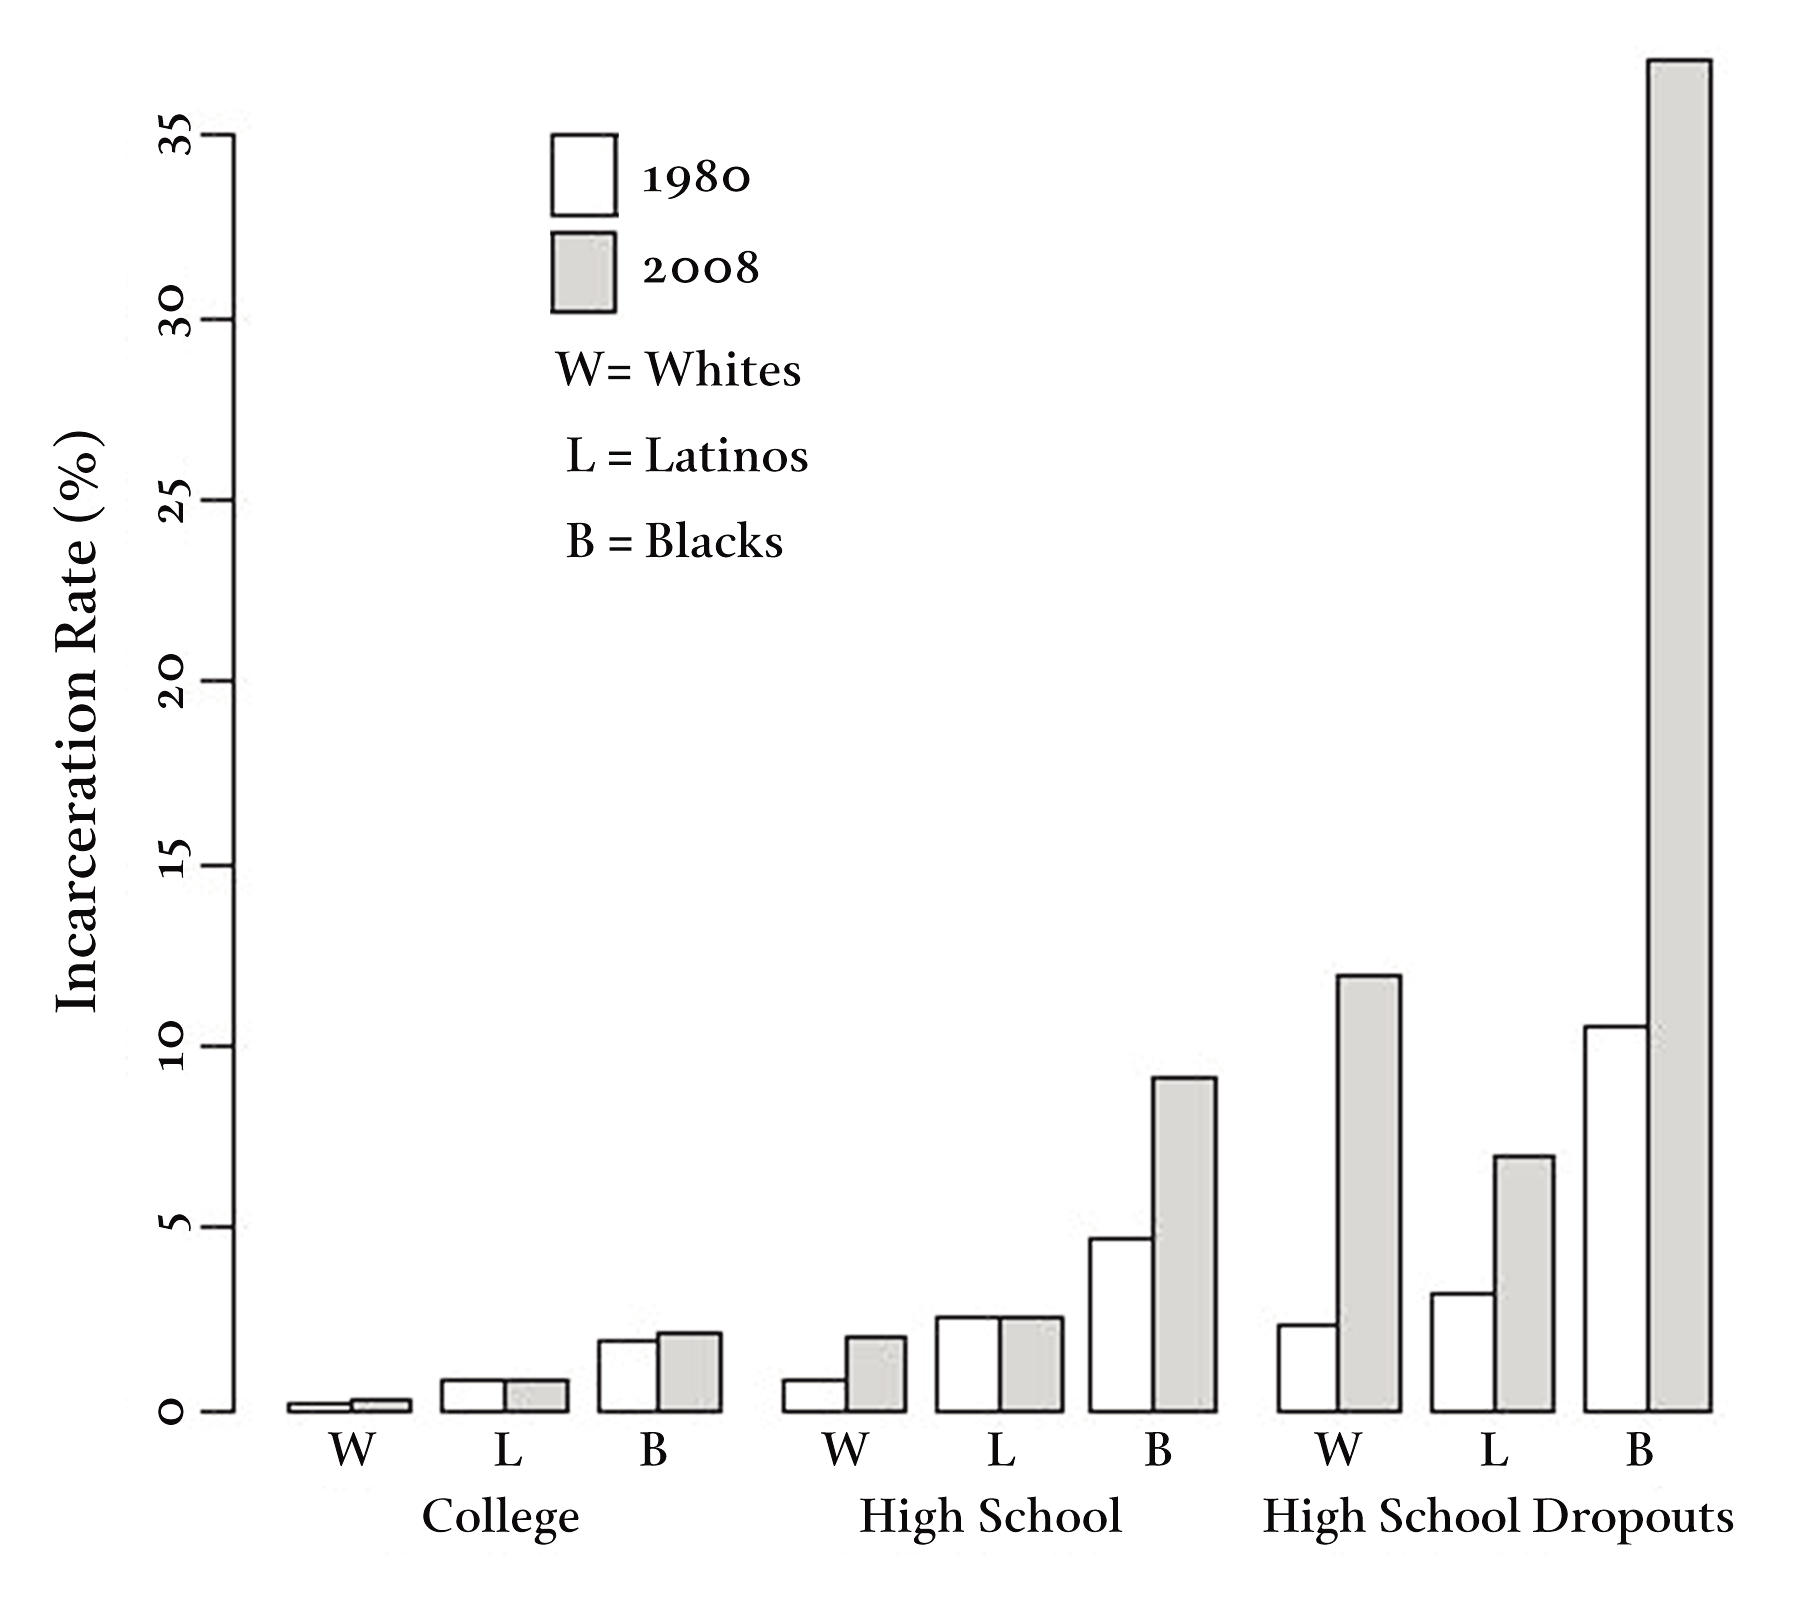 Figure 1: Percentage of Men Aged Twenty to Thirty-Four in Prison or Jail, by Race/Ethnicity and Education, 1980 and 2008